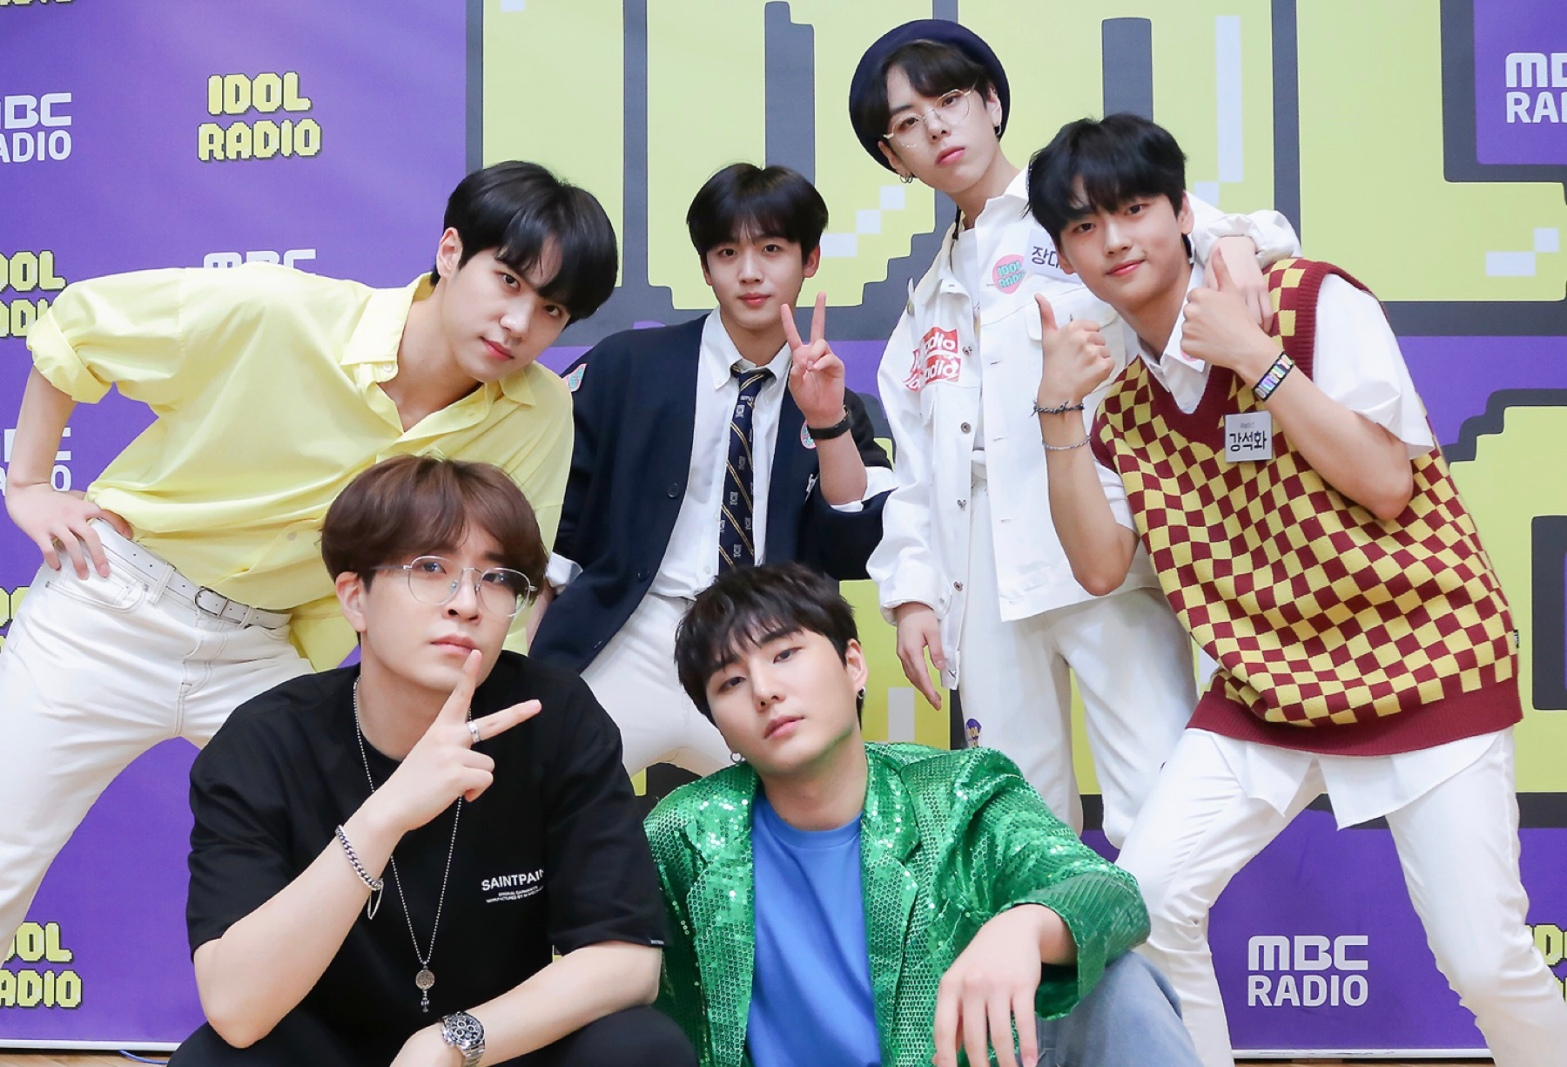 OUI Boys Kim Yohan, Kim Donghan, Jang Dae Hyeon and Kang Seok Hwa with Idol Radio DJs, Youngjae and YoungK